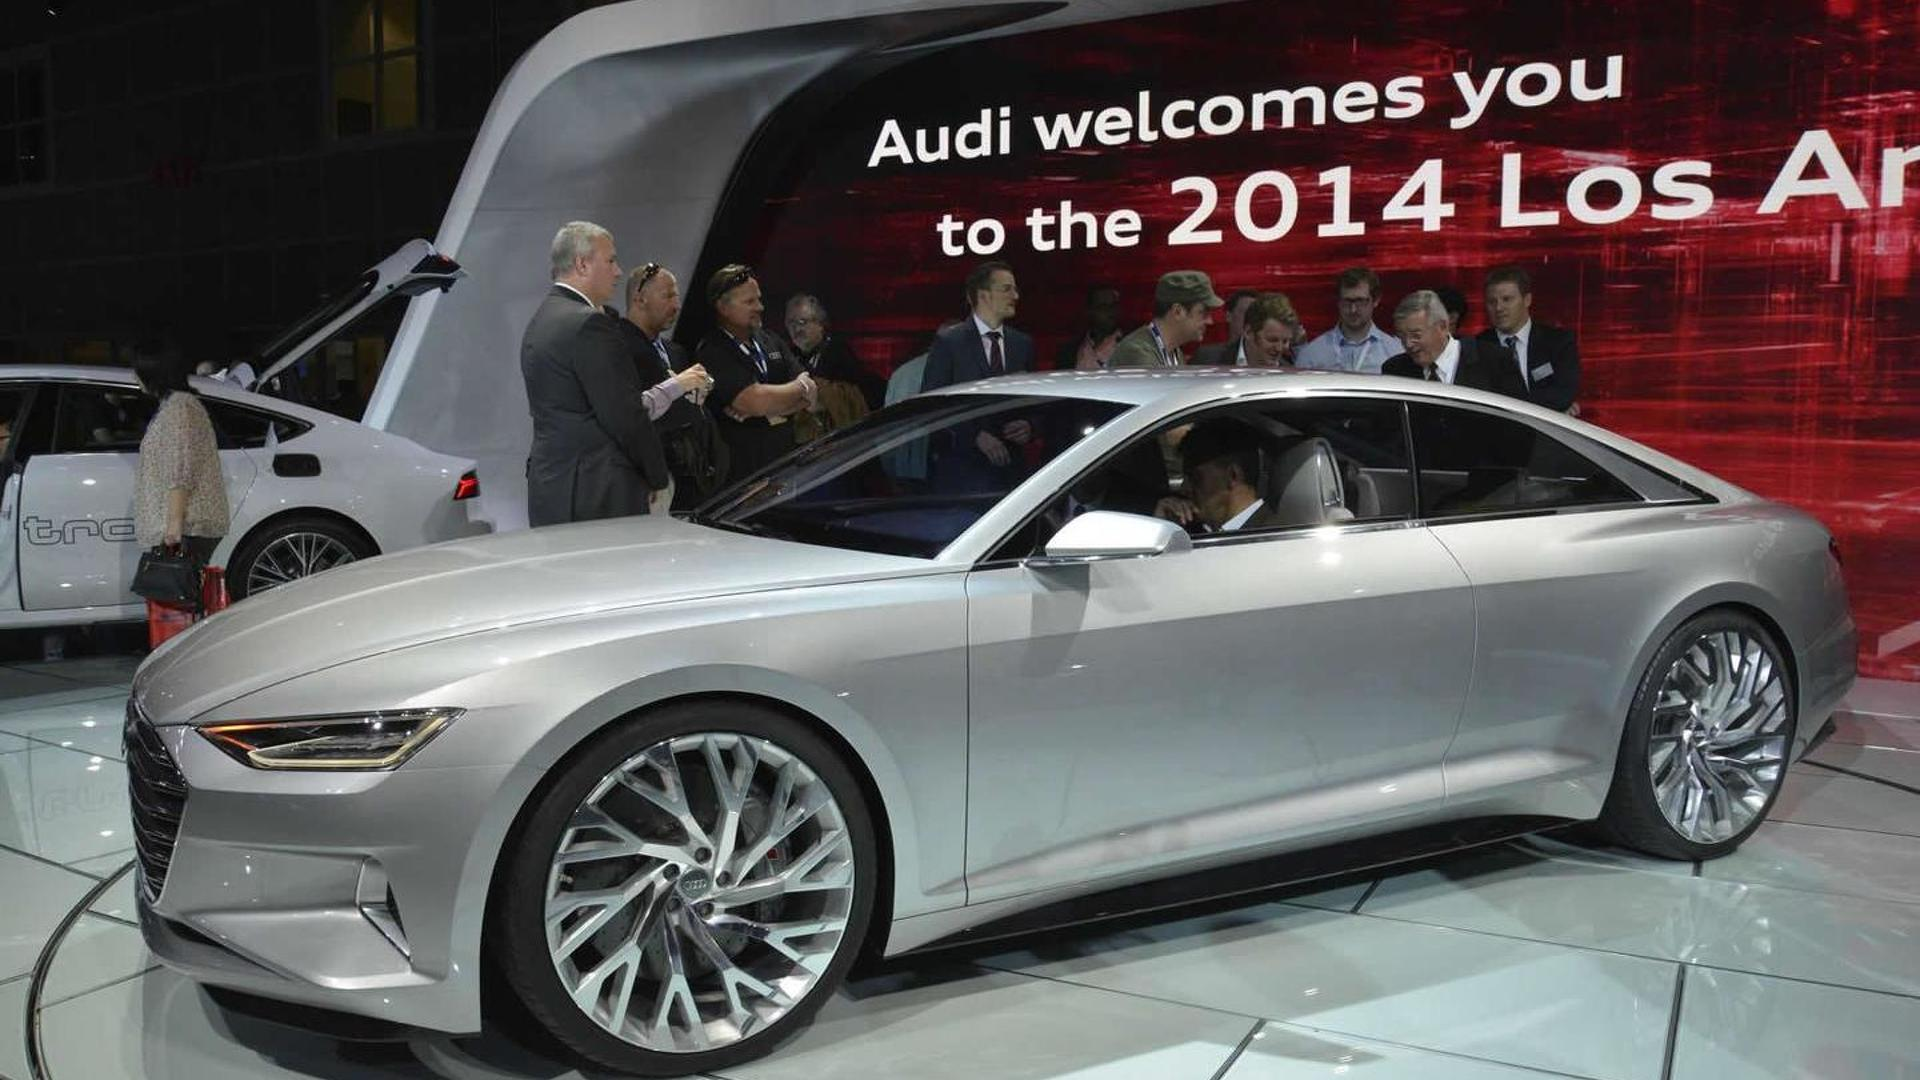 Next Generation Audi A8 Design To Be Influenced By Prologue Concept New Live Pics